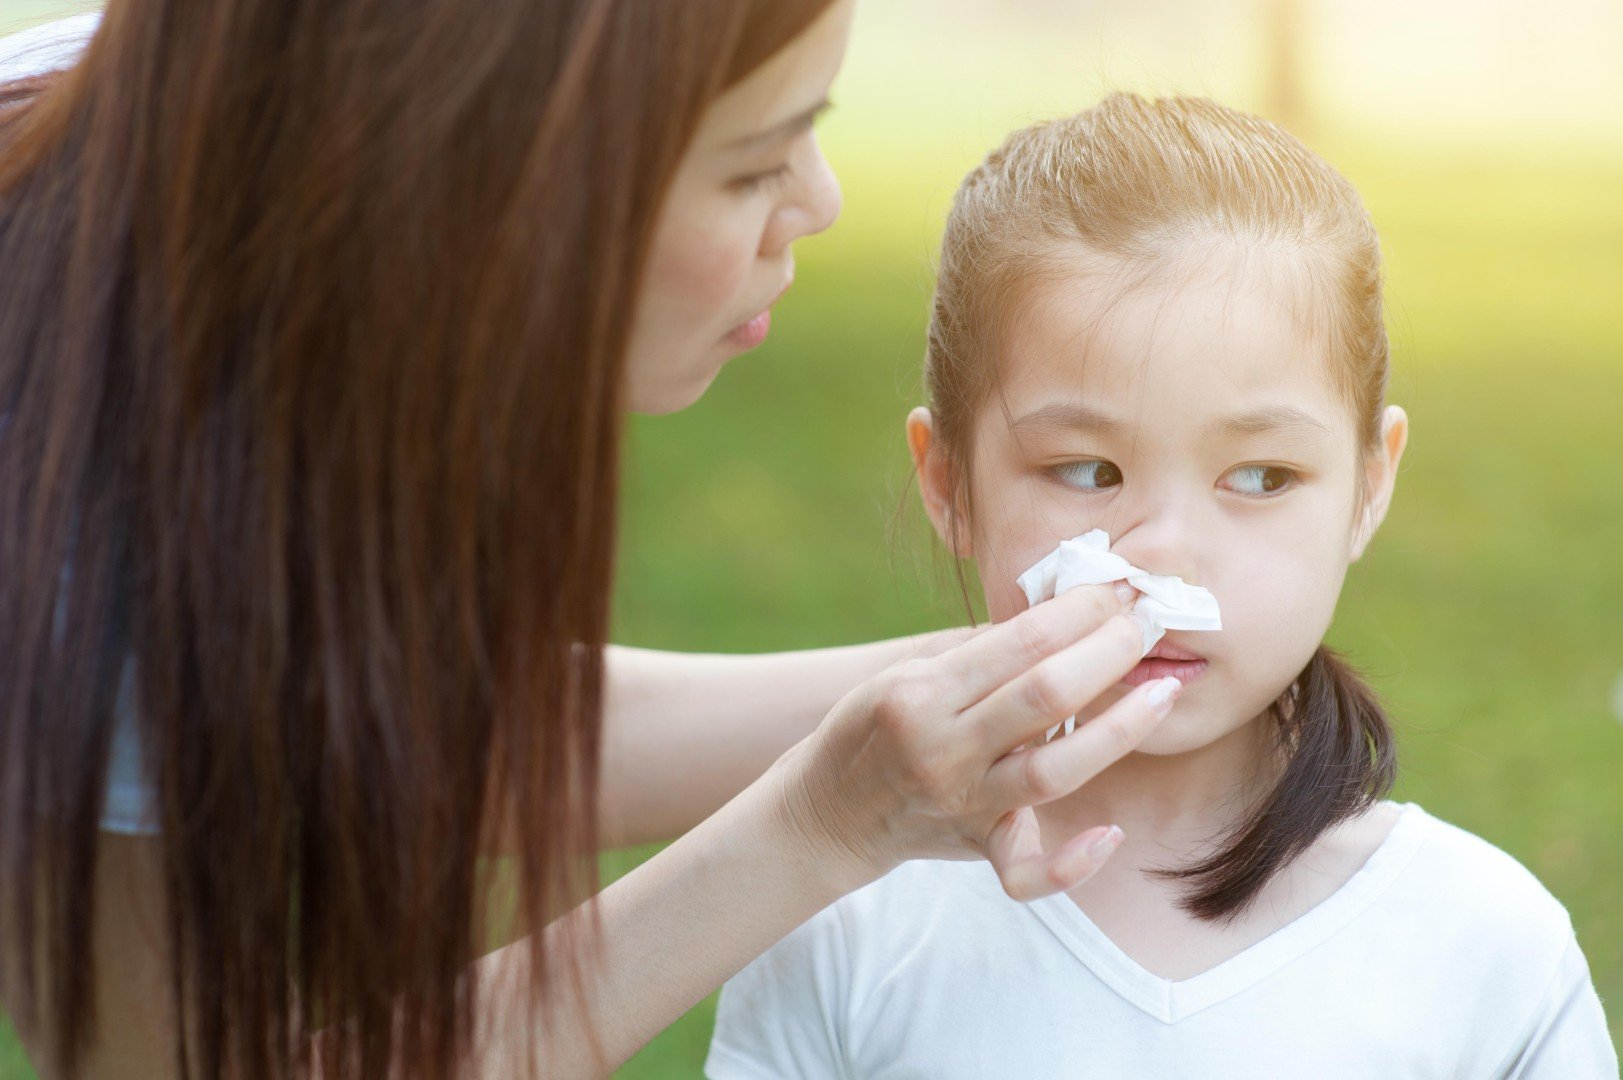 c6aa1997f8f98 How to boost your child's immune system and stop germs in their tracks  before you get infected | South China Morning Post